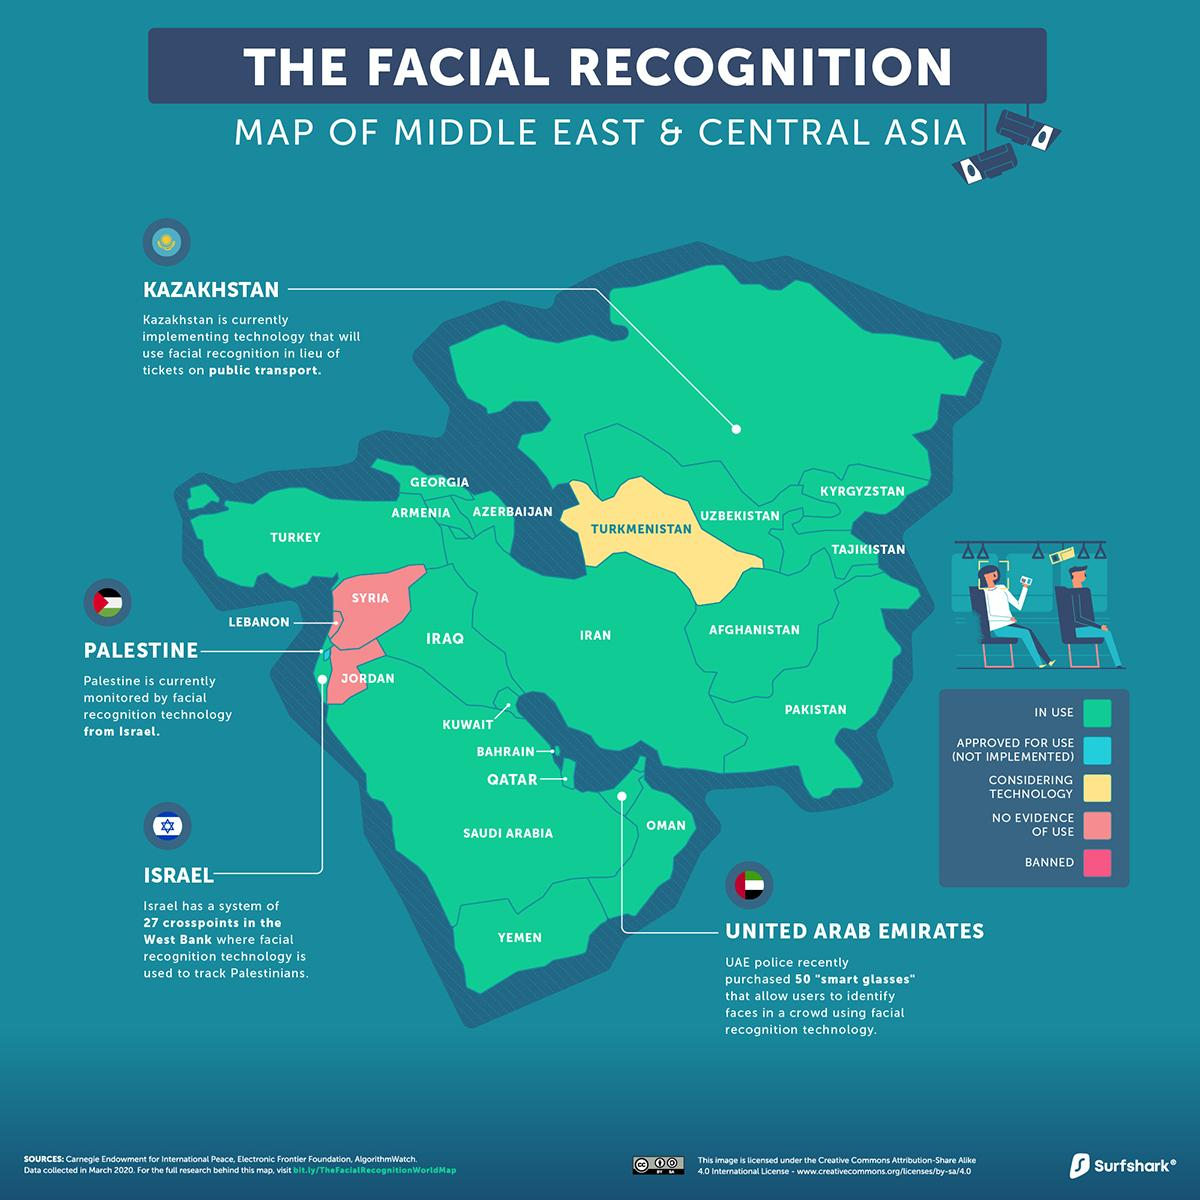 Facial-Recognition-Middle-East-Central-Asia-Map